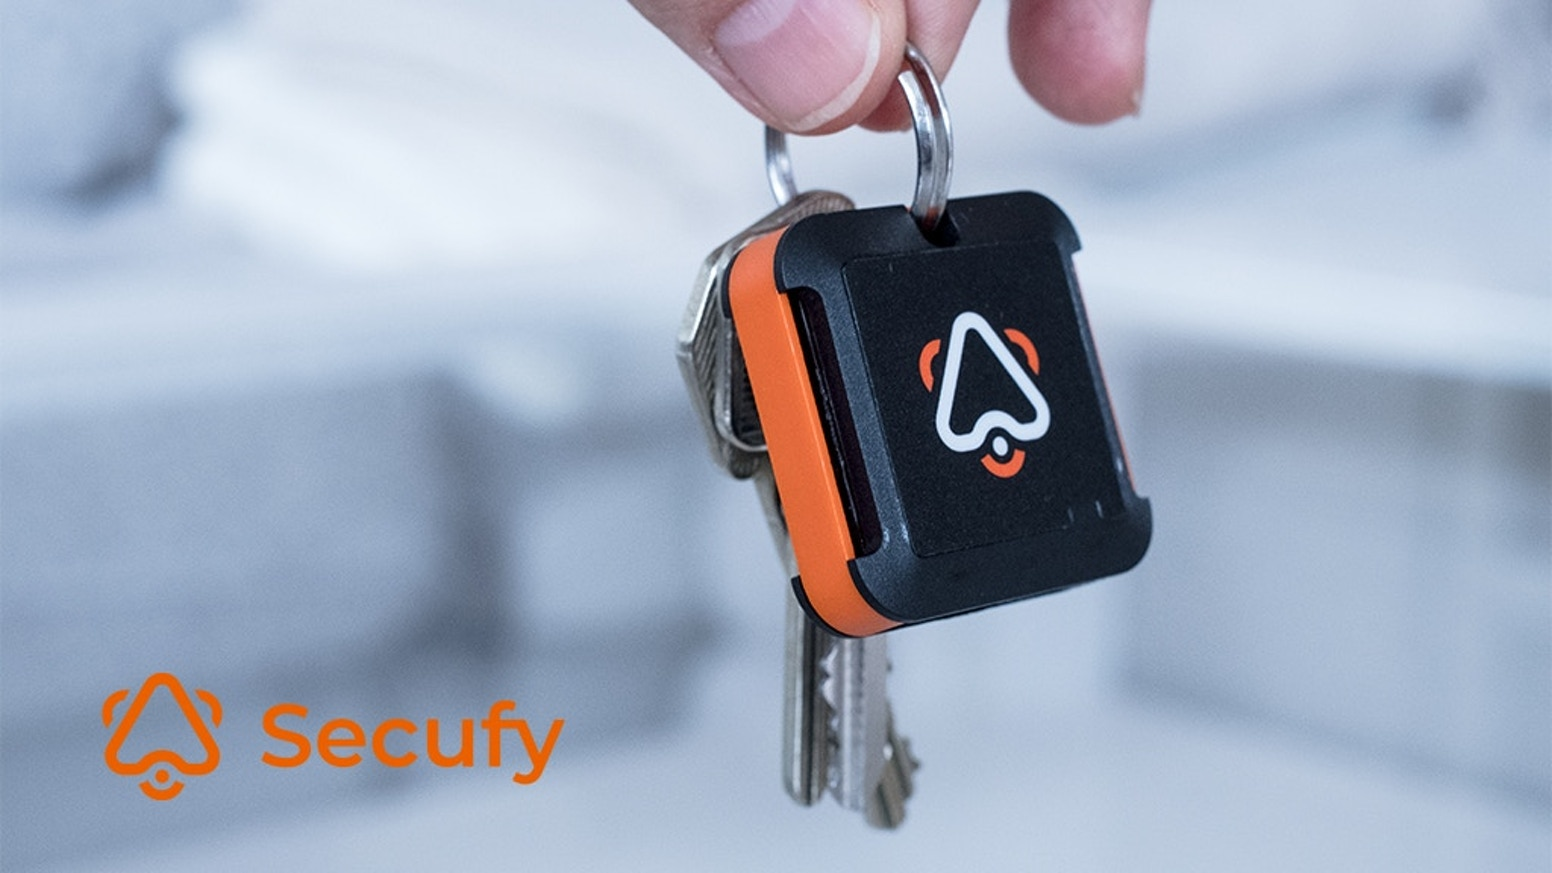 Secufy is a personal SOS button that reaches up to 3 people in case of emergency. It's incredibly reliable & secure.